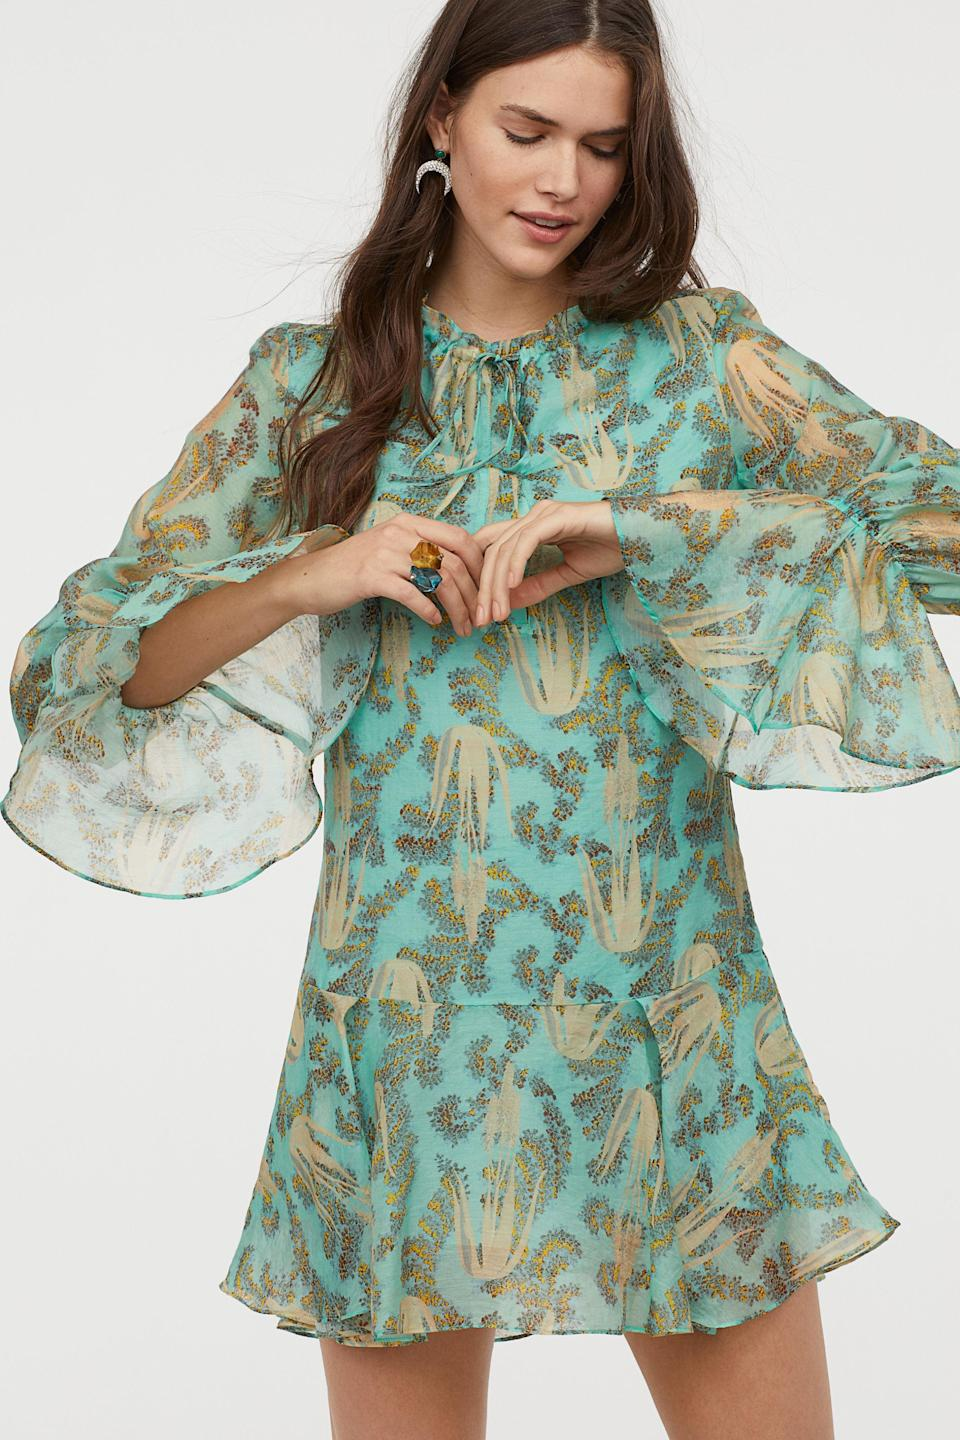 """<h3>H&M</h3><br><br>All eyes are on H&M right now — as one of the biggest clothing retailers in the world, its efforts in sustainability have the potential to be significant. So far, we like what we're seeing: this season's <a href=""""https://www.refinery29.com/en-us/2019/04/229508/hm-conscious-collection-spring-2019"""" rel=""""nofollow noopener"""" target=""""_blank"""" data-ylk=""""slk:Conscious"""" class=""""link rapid-noclick-resp"""">Conscious</a> collection was replete with airy separates in a host of environmentally-friendly fabrics, including (but not limited to) recycled polyester, lyocell, and Piñatex, a leather alternative made from pineapple-leaf fibers. We've also been reading about its efforts to test out the secondhand market with an & Other Stories-dedicated shop on the Swedish resale site (and H&M investee) <a href=""""https://www.sellpy.se/"""" rel=""""nofollow noopener"""" target=""""_blank"""" data-ylk=""""slk:Sellpy"""" class=""""link rapid-noclick-resp"""">Sellpy</a>. Don't forget: H&M also offers <a href=""""https://www.refinery29.com/en-us/retailers-recycle-clothing#slide-1"""" rel=""""nofollow noopener"""" target=""""_blank"""" data-ylk=""""slk:in-store textile recycling"""" class=""""link rapid-noclick-resp"""">in-store textile recycling</a> at all of their retail locations.<br><br><strong>H&M Conscious</strong> Lyocell-blend Dress, $, available at <a href=""""https://go.skimresources.com/?id=30283X879131&url=https%3A%2F%2Fwww2.hm.com%2Fen_us%2Fproductpage.0737621003.html"""" rel=""""nofollow noopener"""" target=""""_blank"""" data-ylk=""""slk:H&M"""" class=""""link rapid-noclick-resp"""">H&M</a>"""